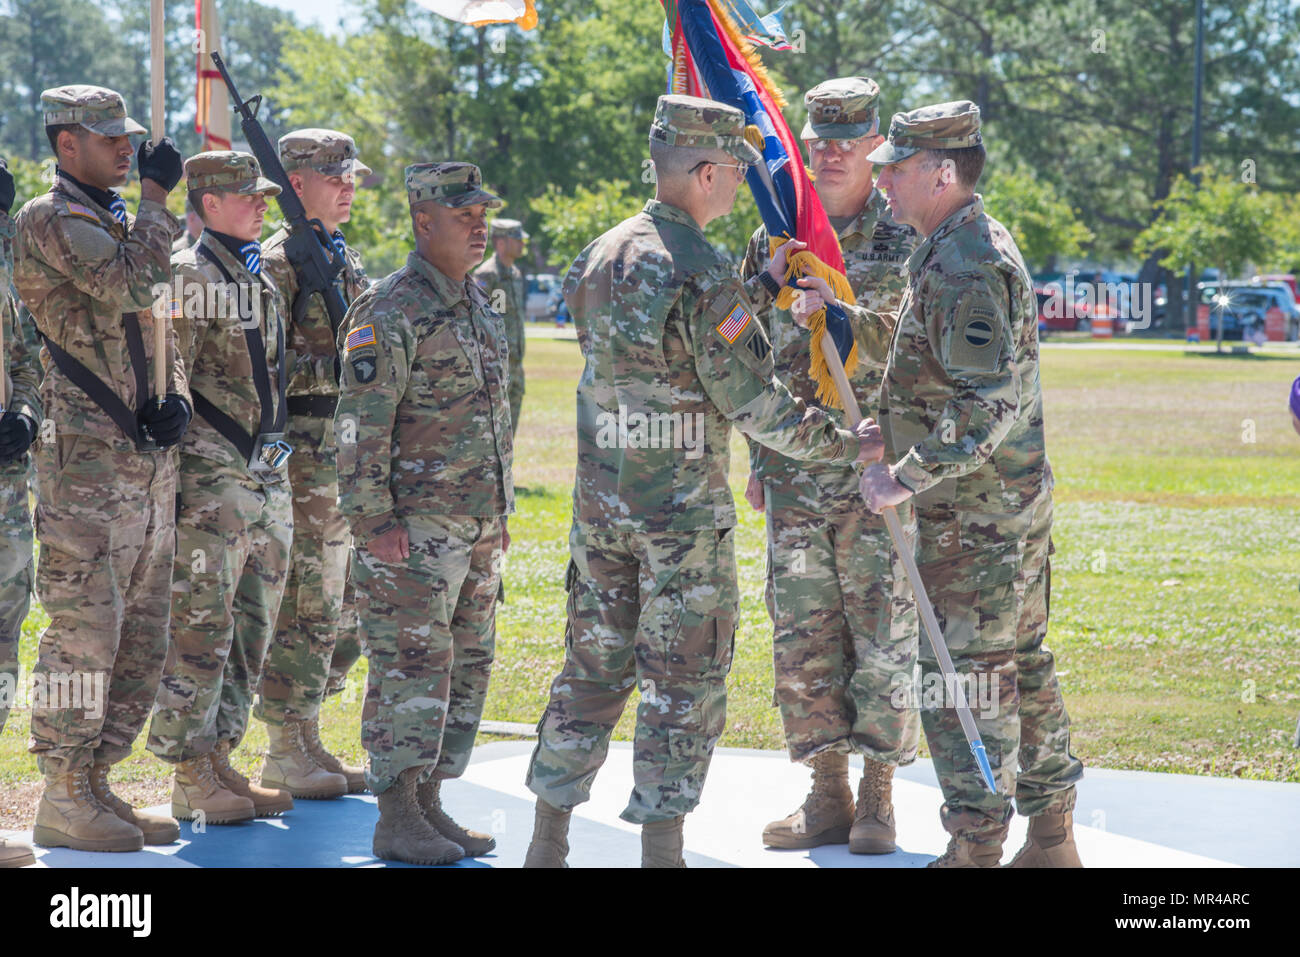 Gen. Robert Abrams, right, Commanding General of U.S. Forces Command, passes the division colors to incoming commander, Maj. Gen. Leopoldo Quintas. The 3rd Infantry Division change of command ceremony was held on Cotrell Field at Fort Stewart, GA, May 8, 2017. Maj. Gen. Leopoldo Quintas assumed command. (U.S. Army Photo by Lt. Col. Brian J. Fickel) Stock Photo